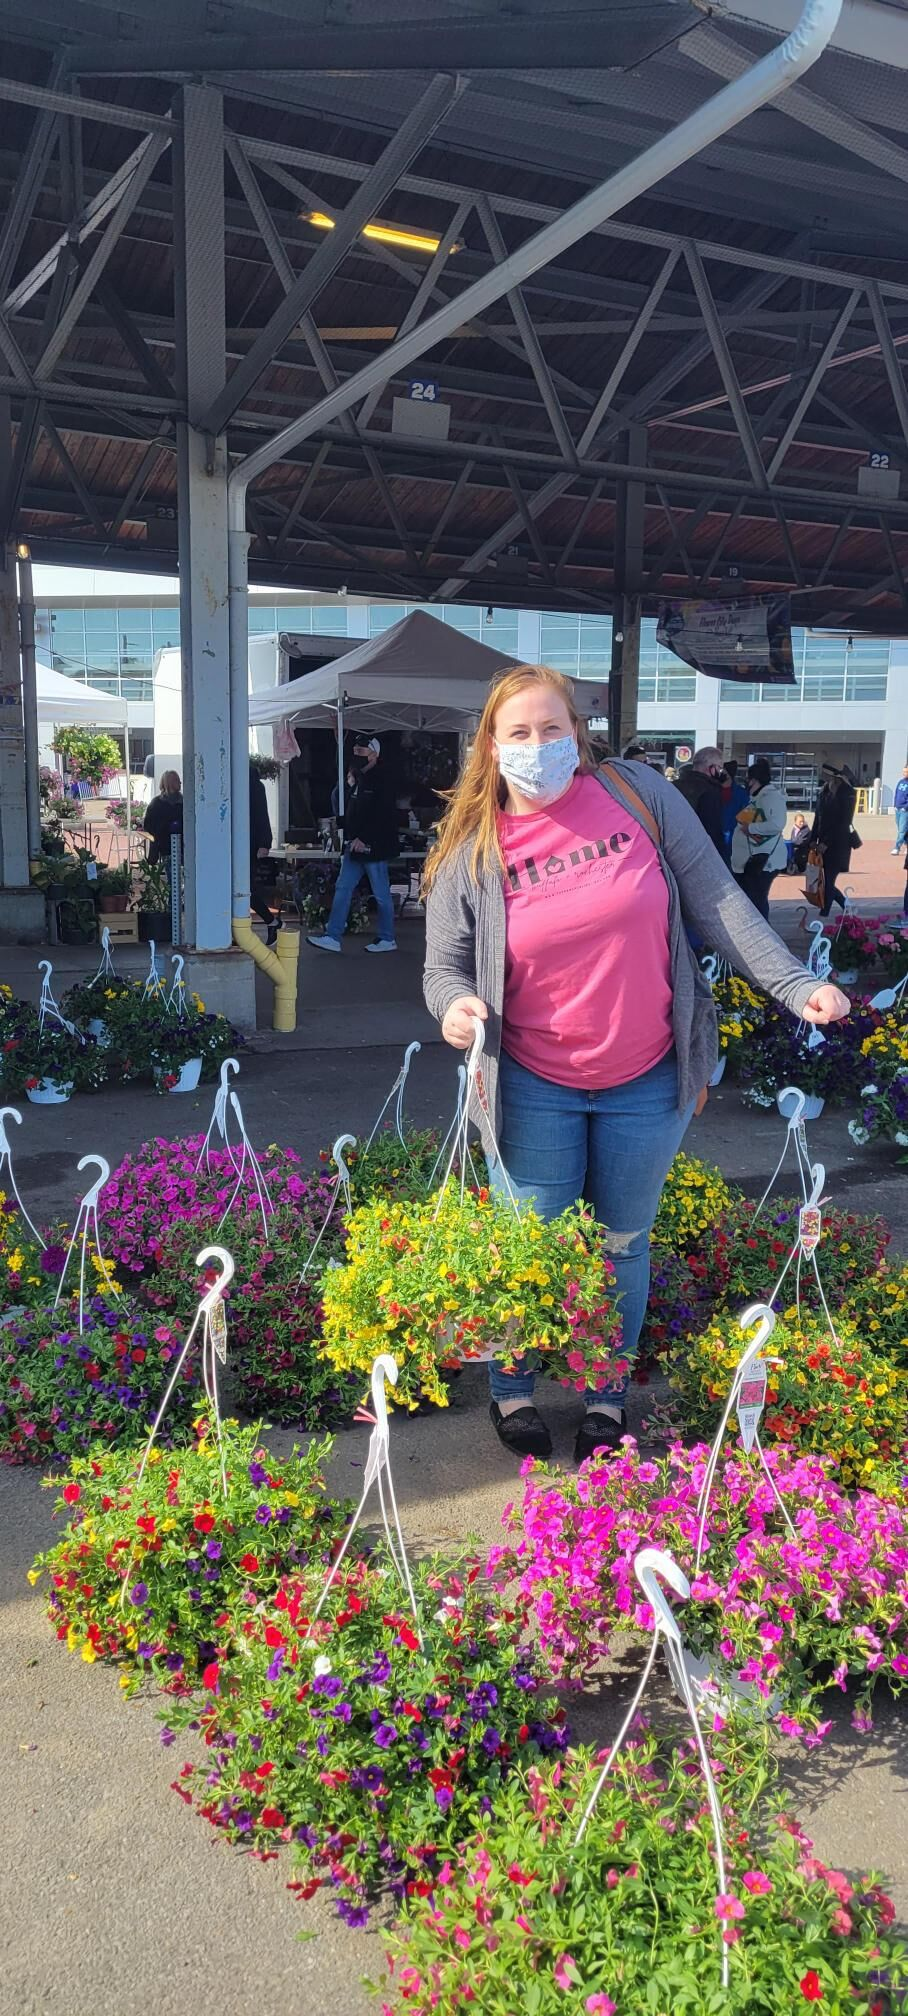 Spending the morning at Flower days at the Rochester Public Market!